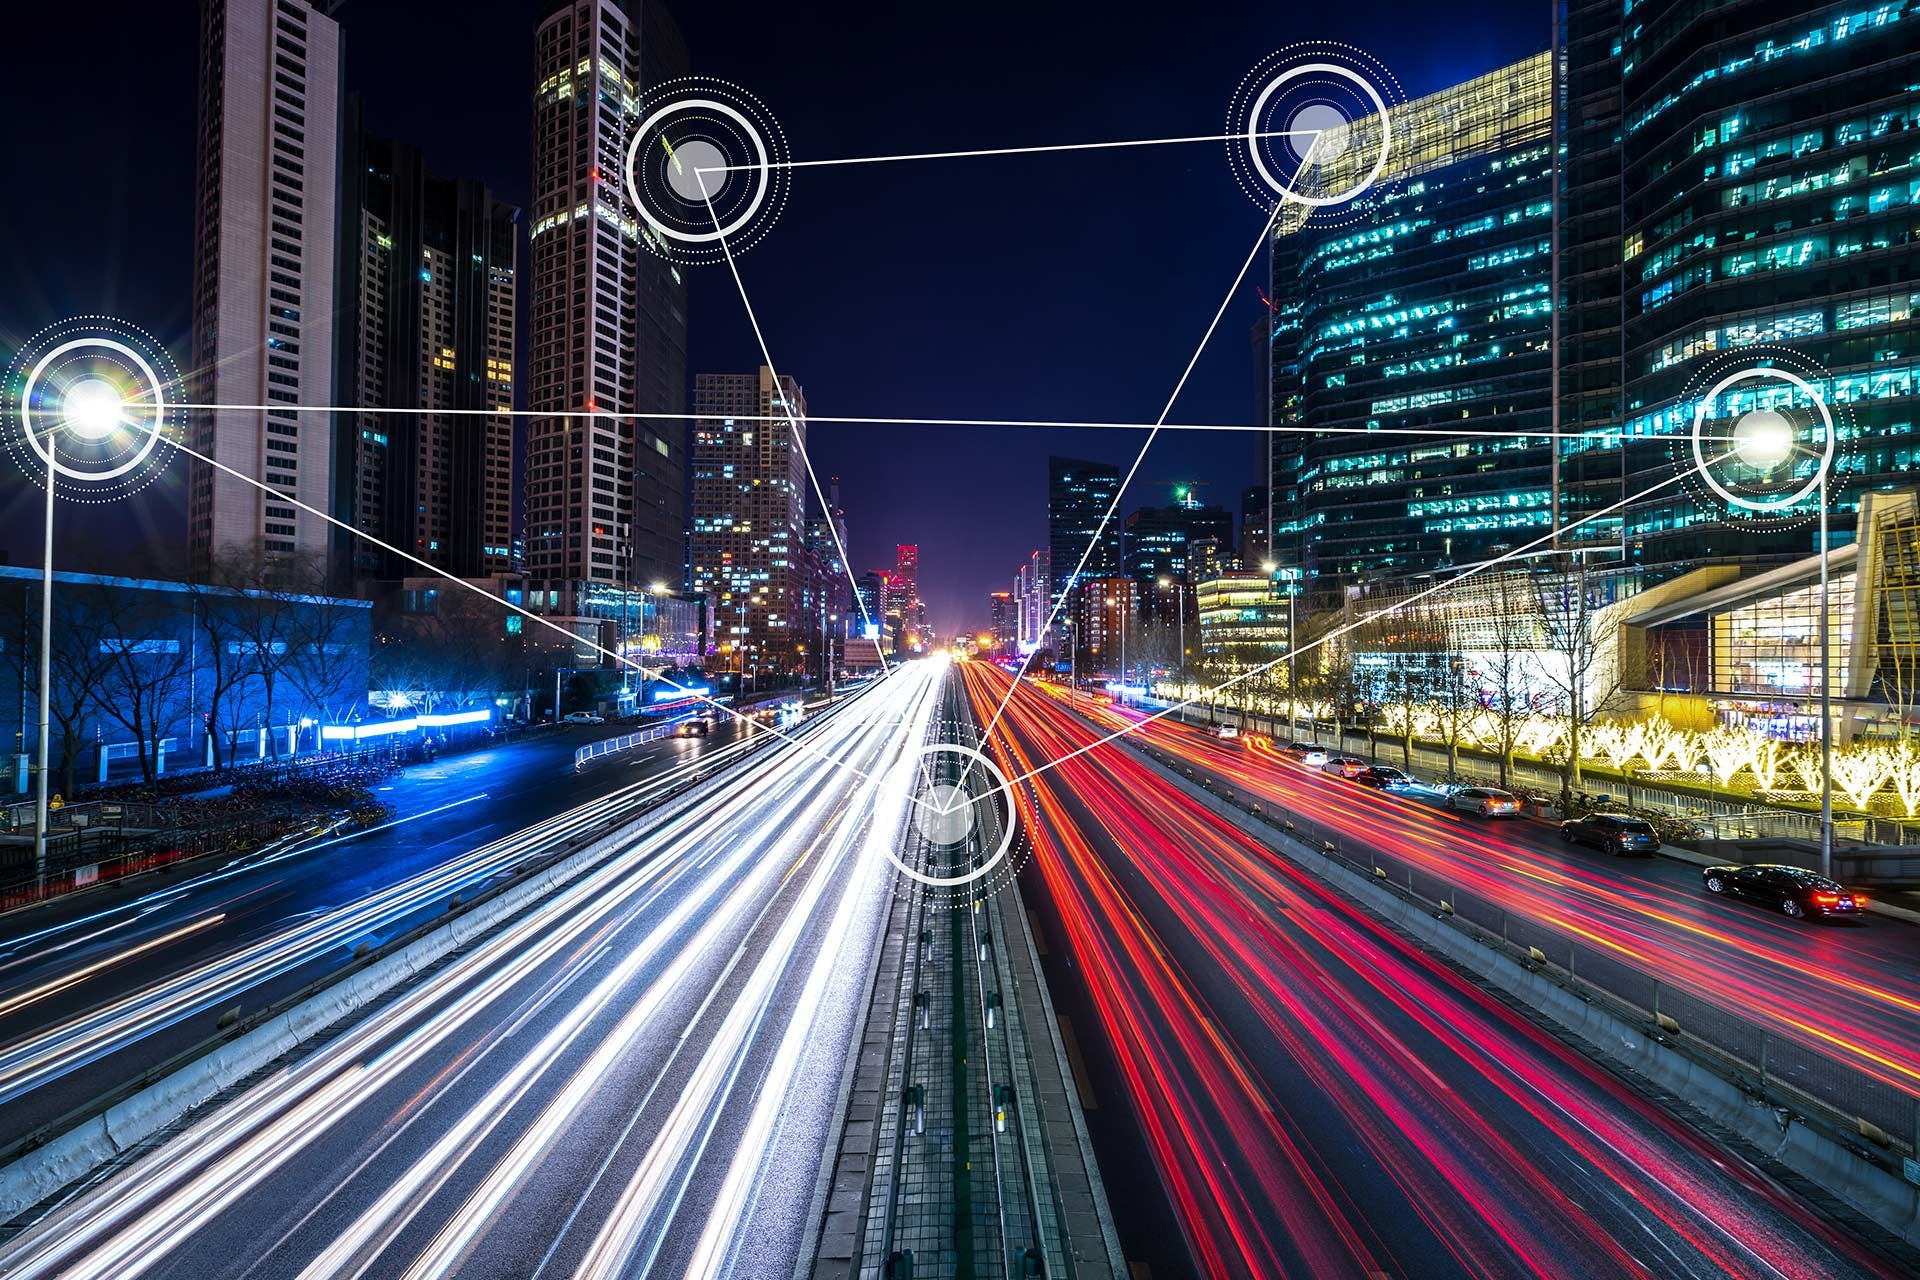 Intelligent traffic technology enables innovative Smart City concepts